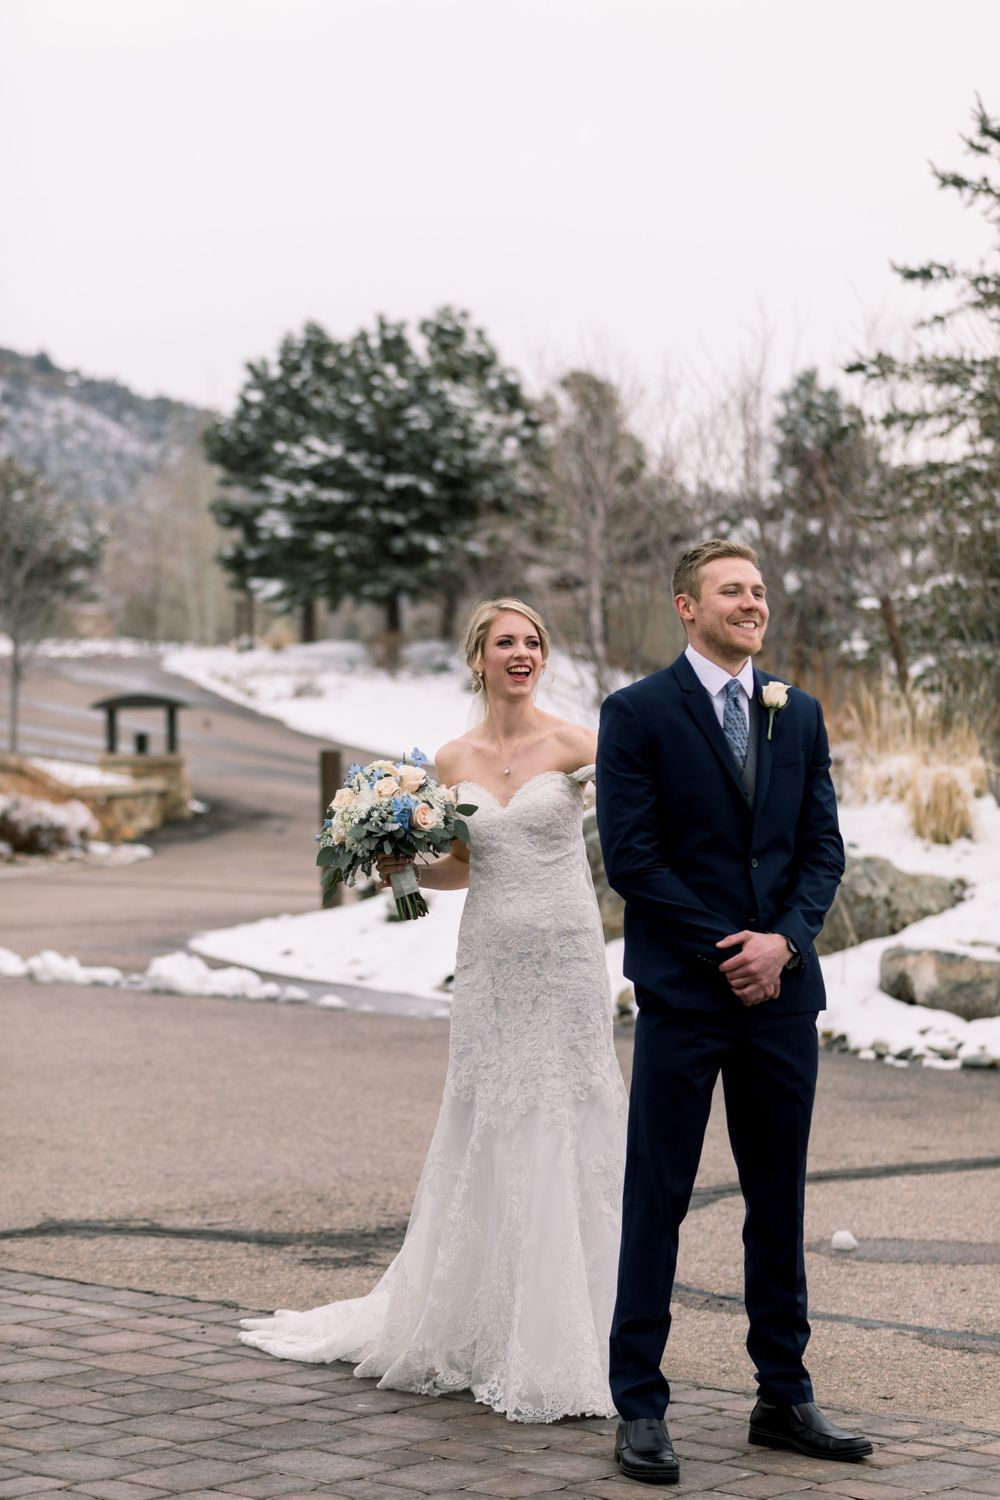 Spruce-Mountain-Ranch-Wedding-Allison-Easterling